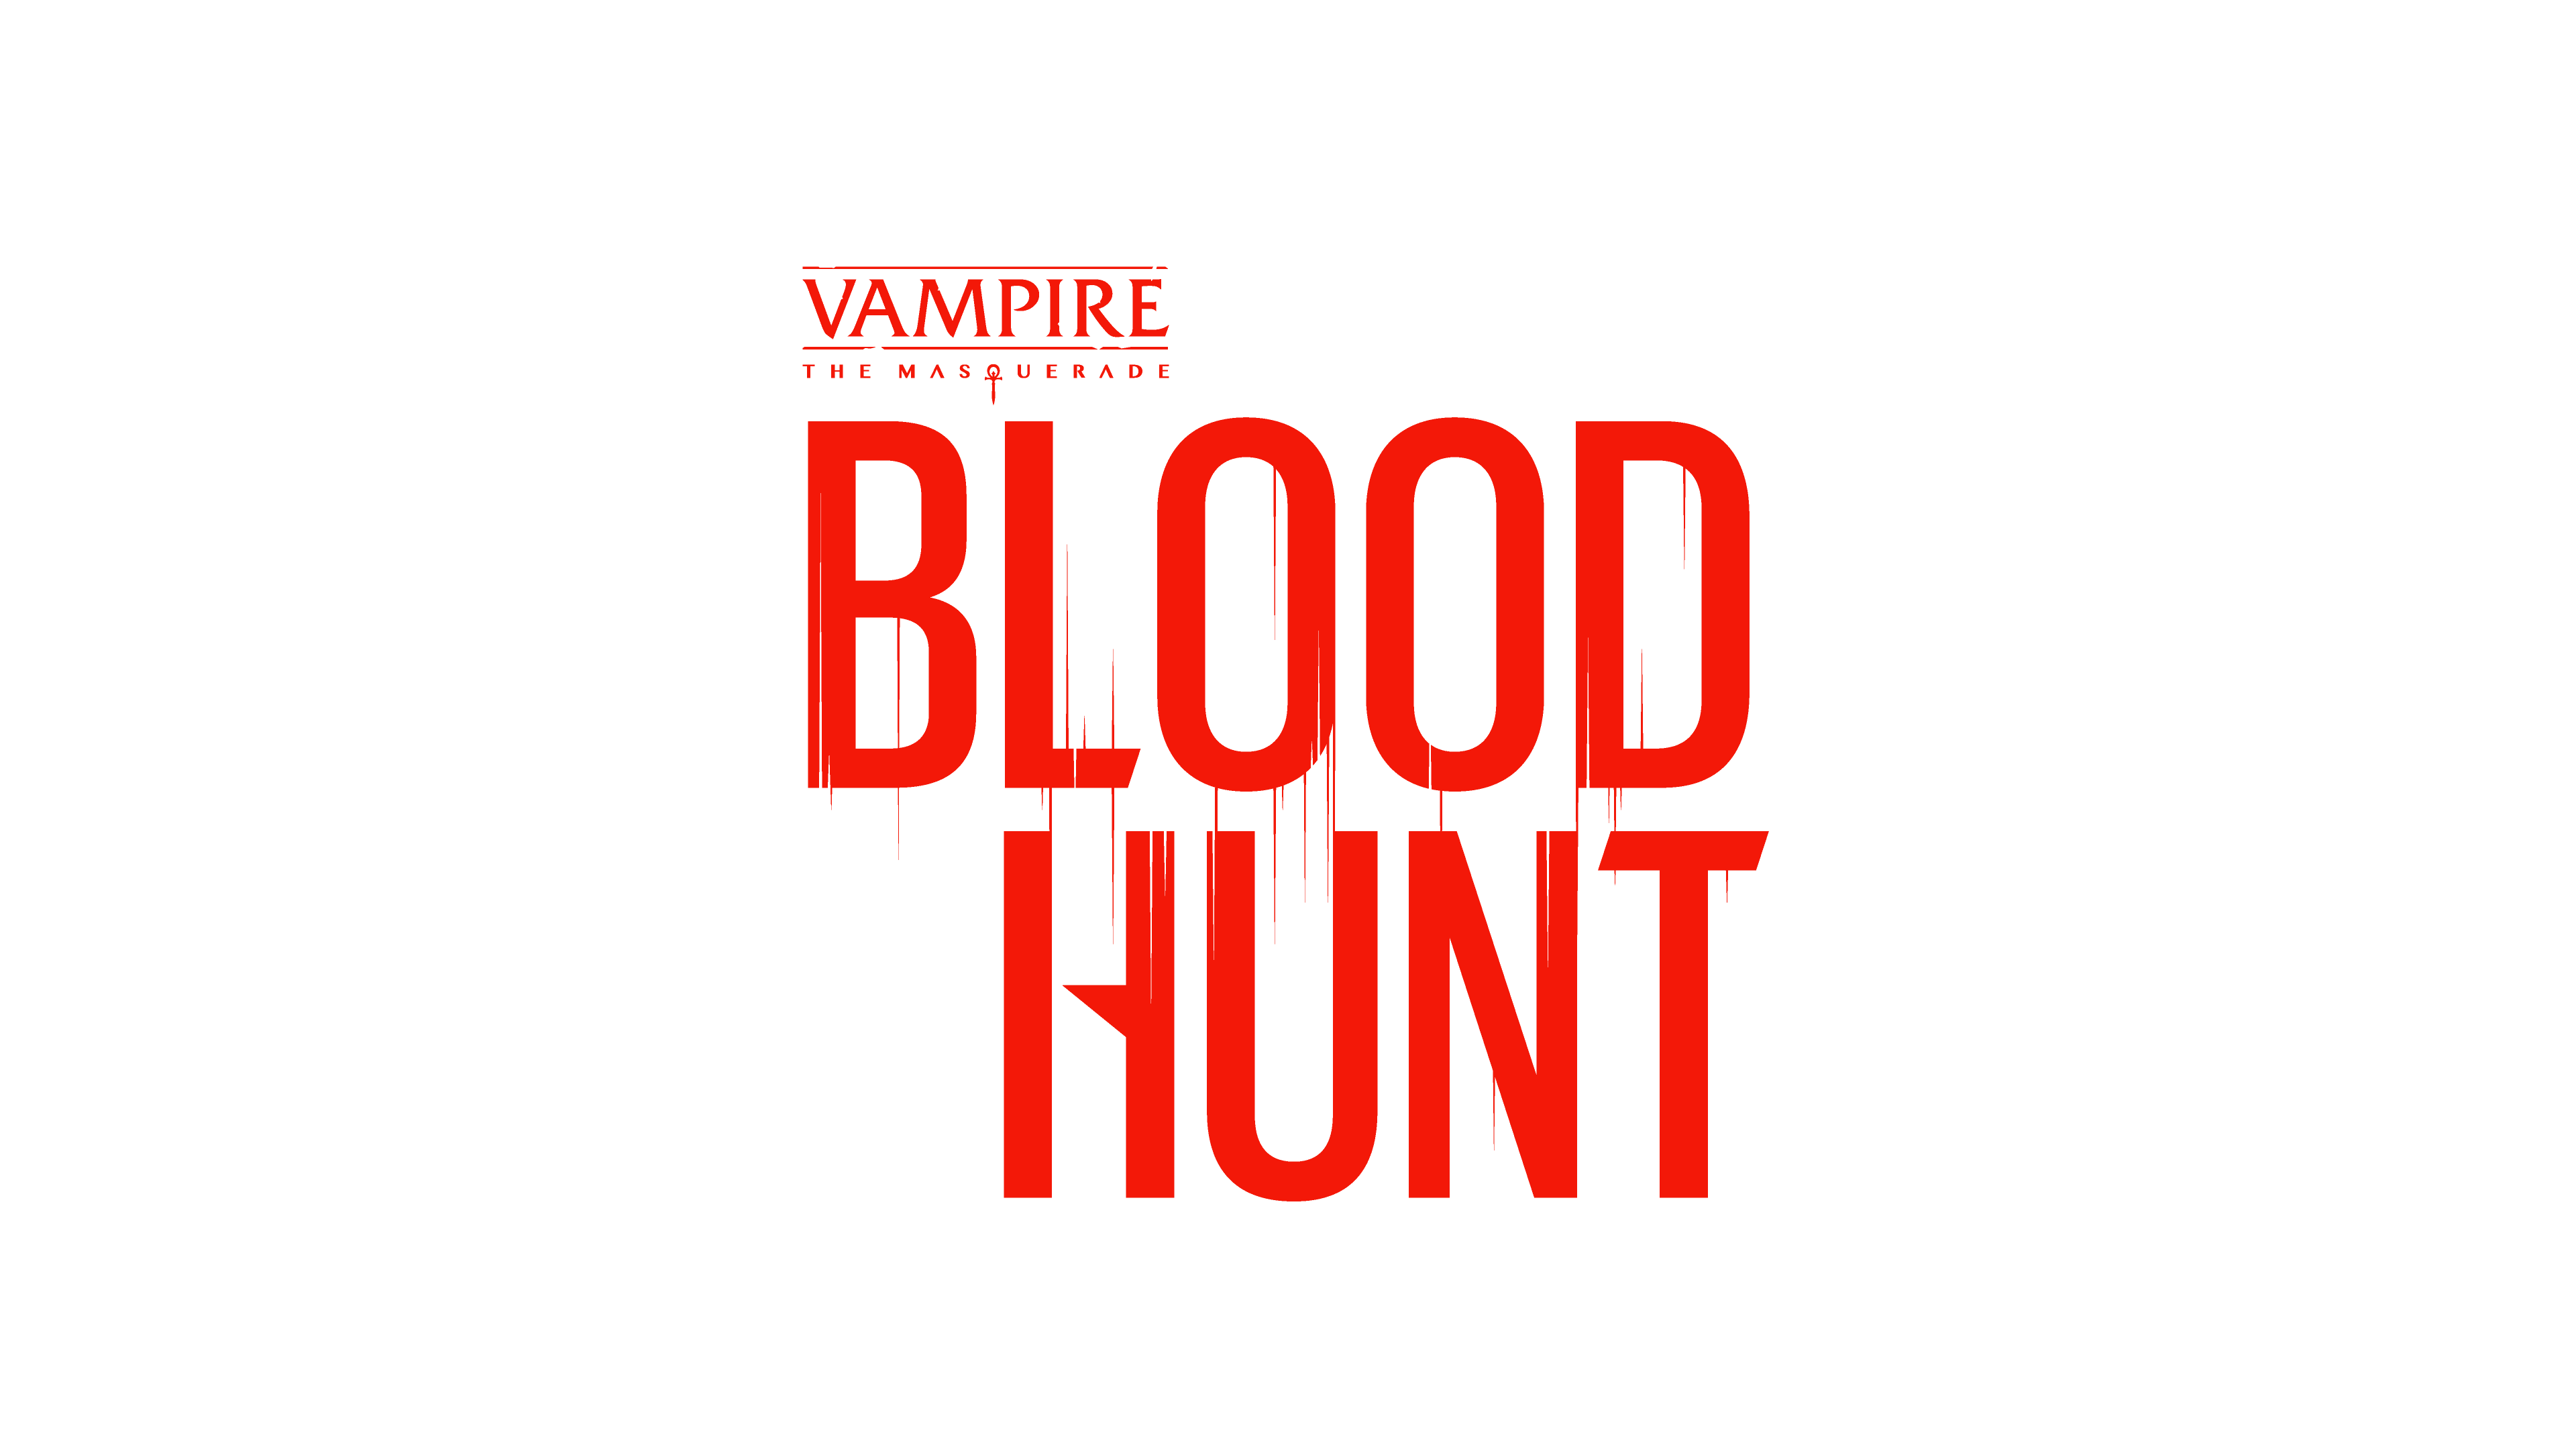 SHARKMOB'S DEBUT TITLE BLOODHUNT ANNOUNCED FOR THE PLAYSTATION(R) 5 (PS5™) SYSTEM